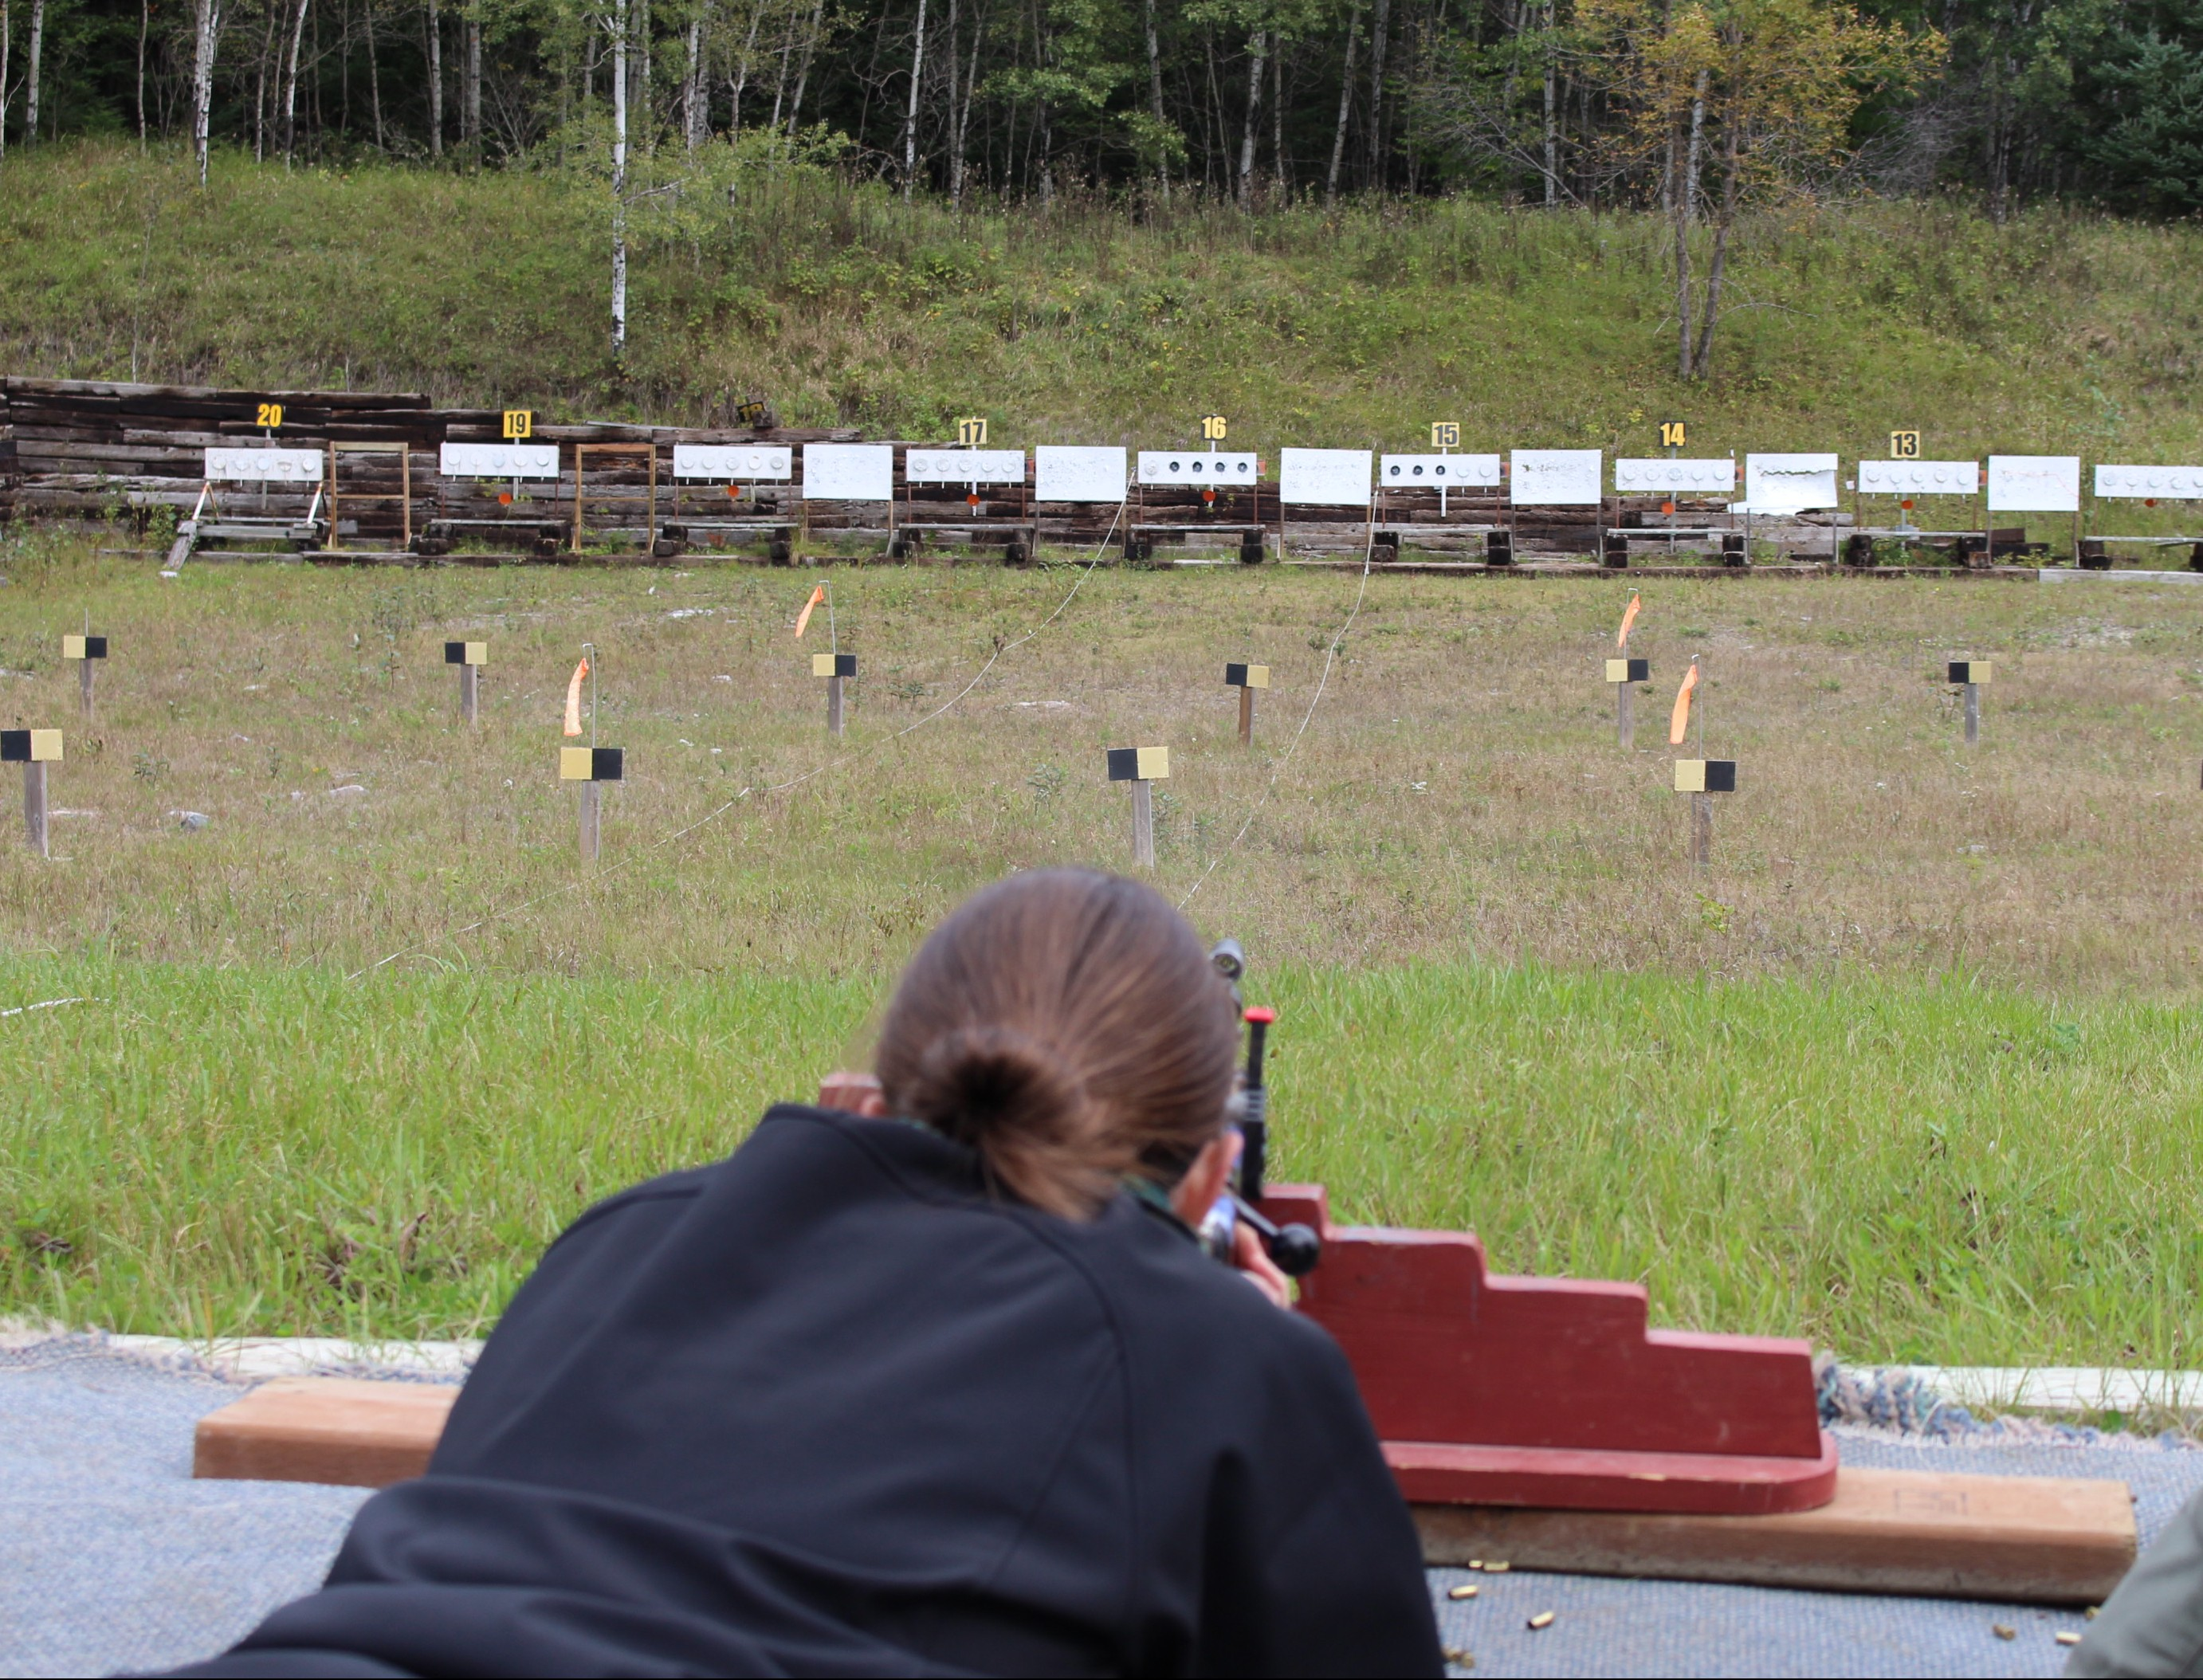 Biathlon shoot at Falcon Trails Resort